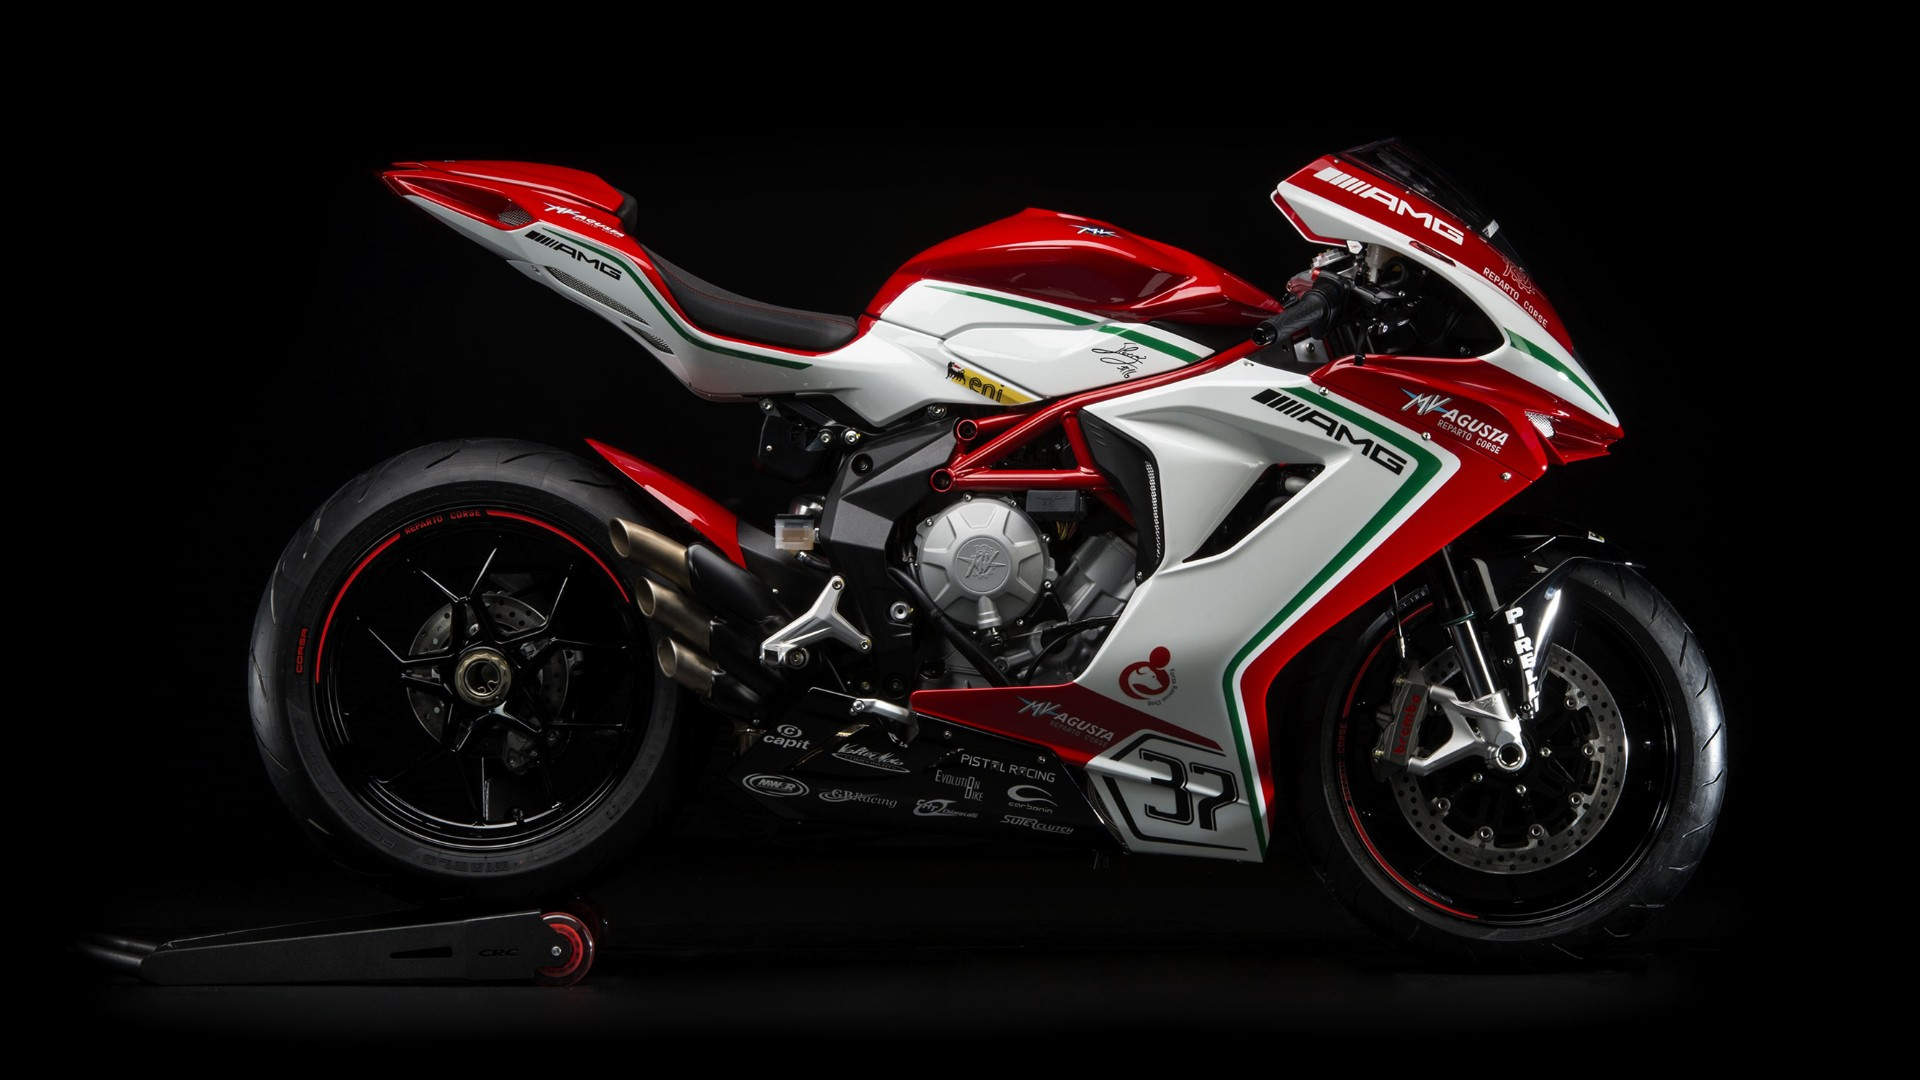 mv agusta f3 800 rc specs 2016 2017 2018 autoevolution. Black Bedroom Furniture Sets. Home Design Ideas